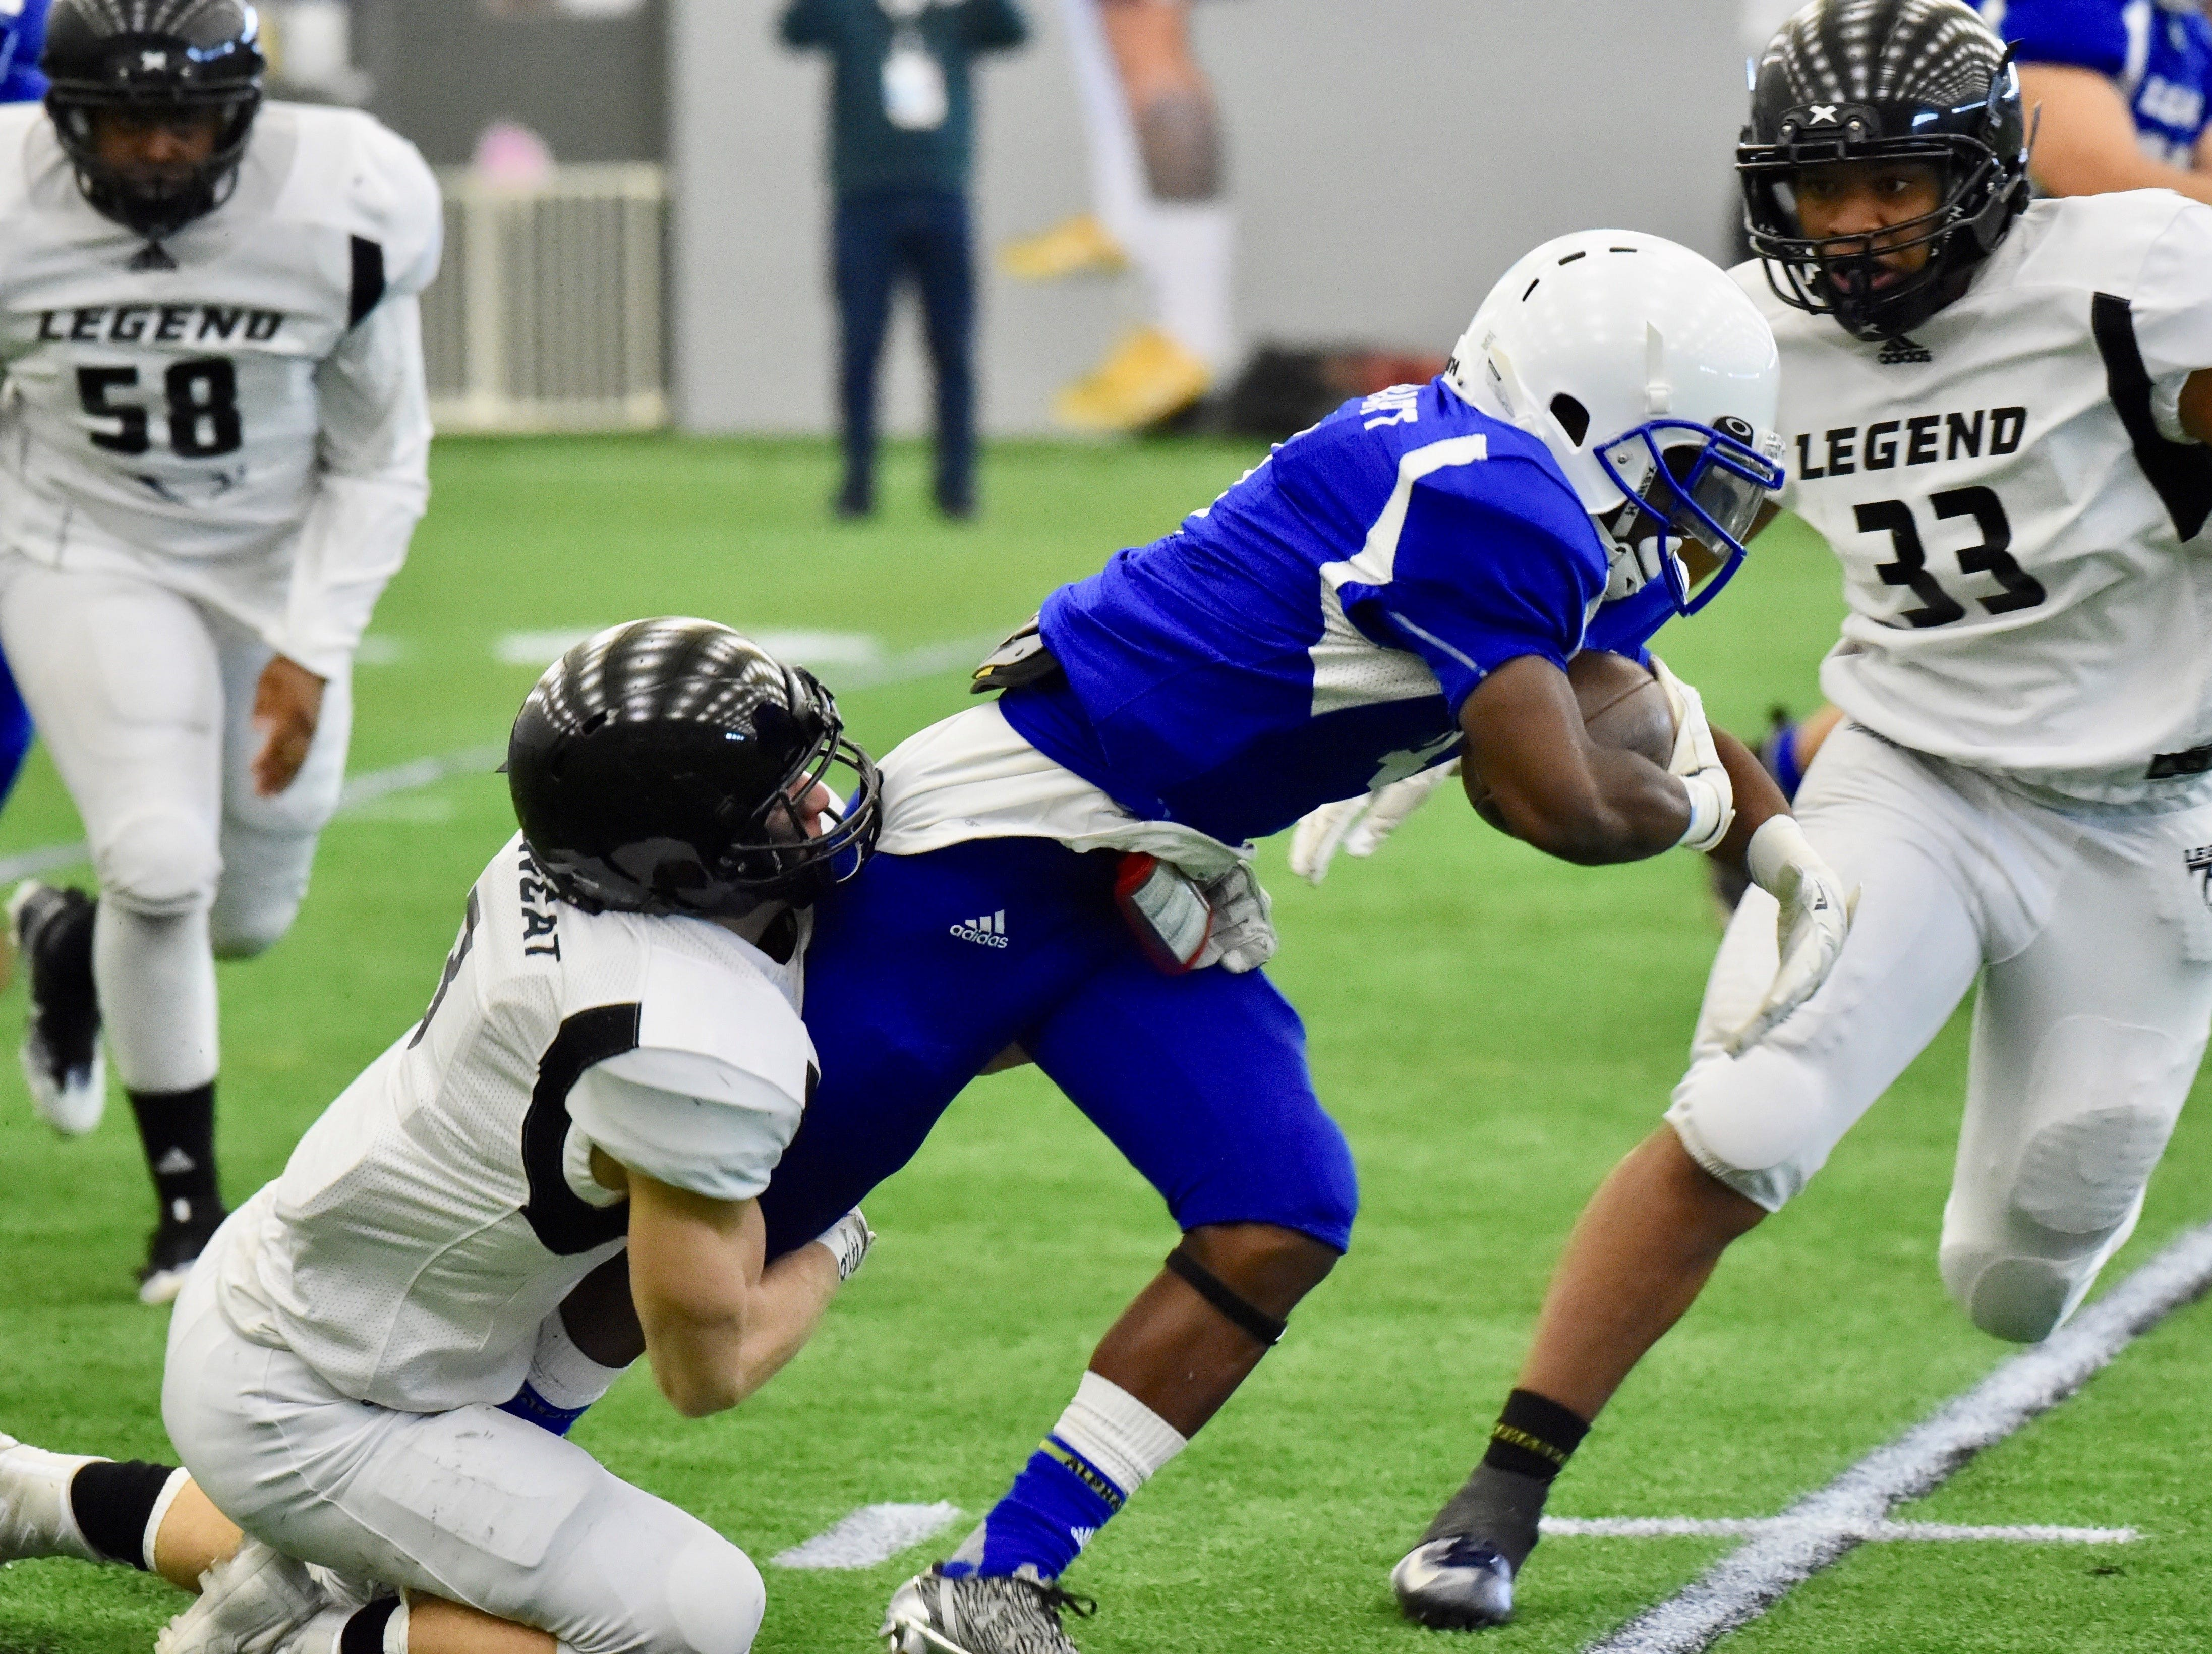 Team Legends defenders surround a Team Legacy running back. At right is Jerimiah Major (33), of Macomb Dakota.